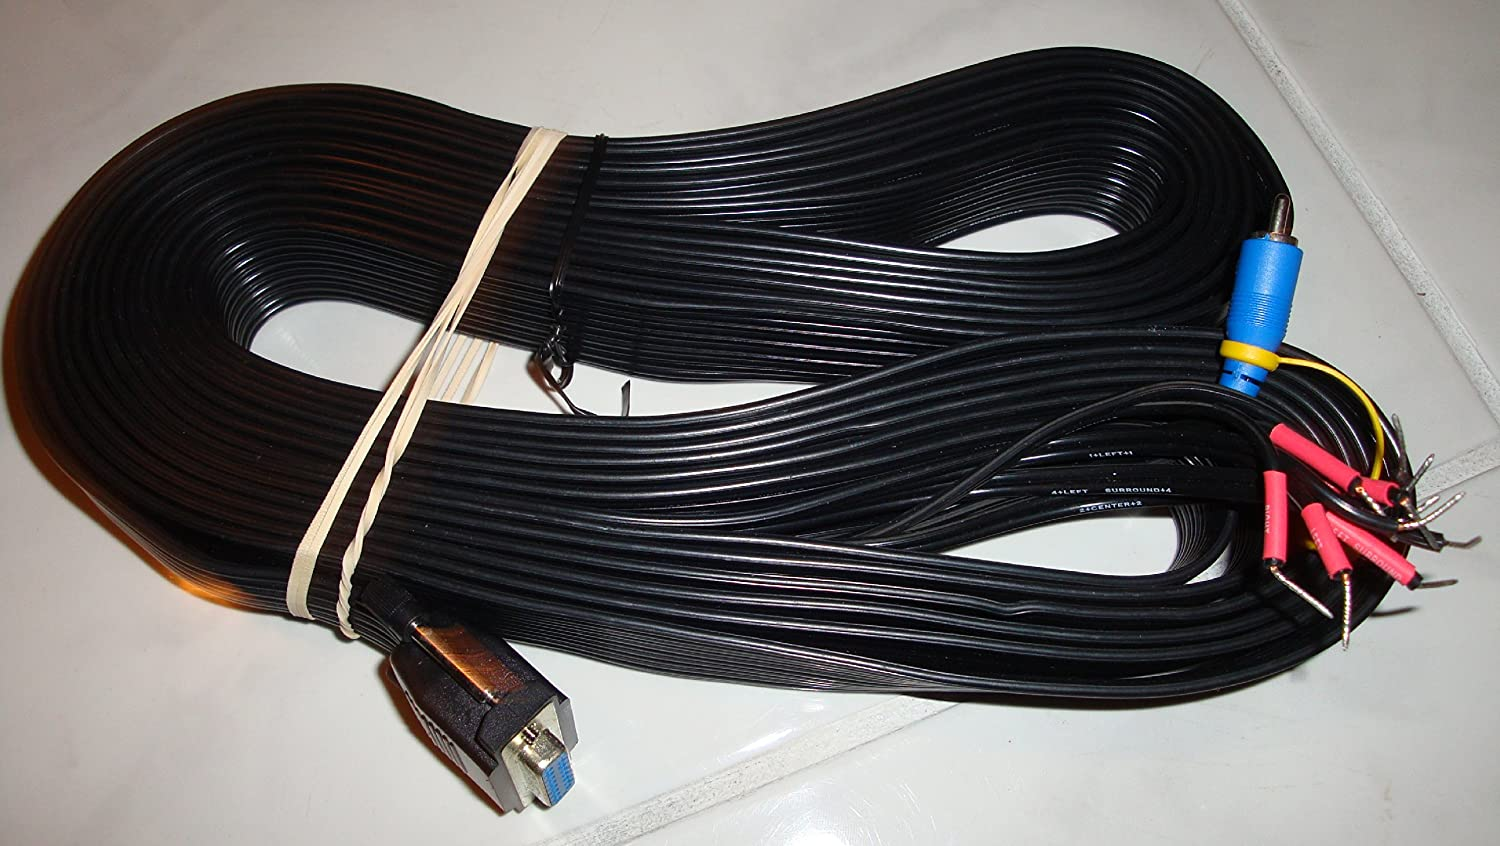 Bose Audio Cable 15 Pin From Subwoofer To Receiver Companion 3 Wiring Diagram Home Theater